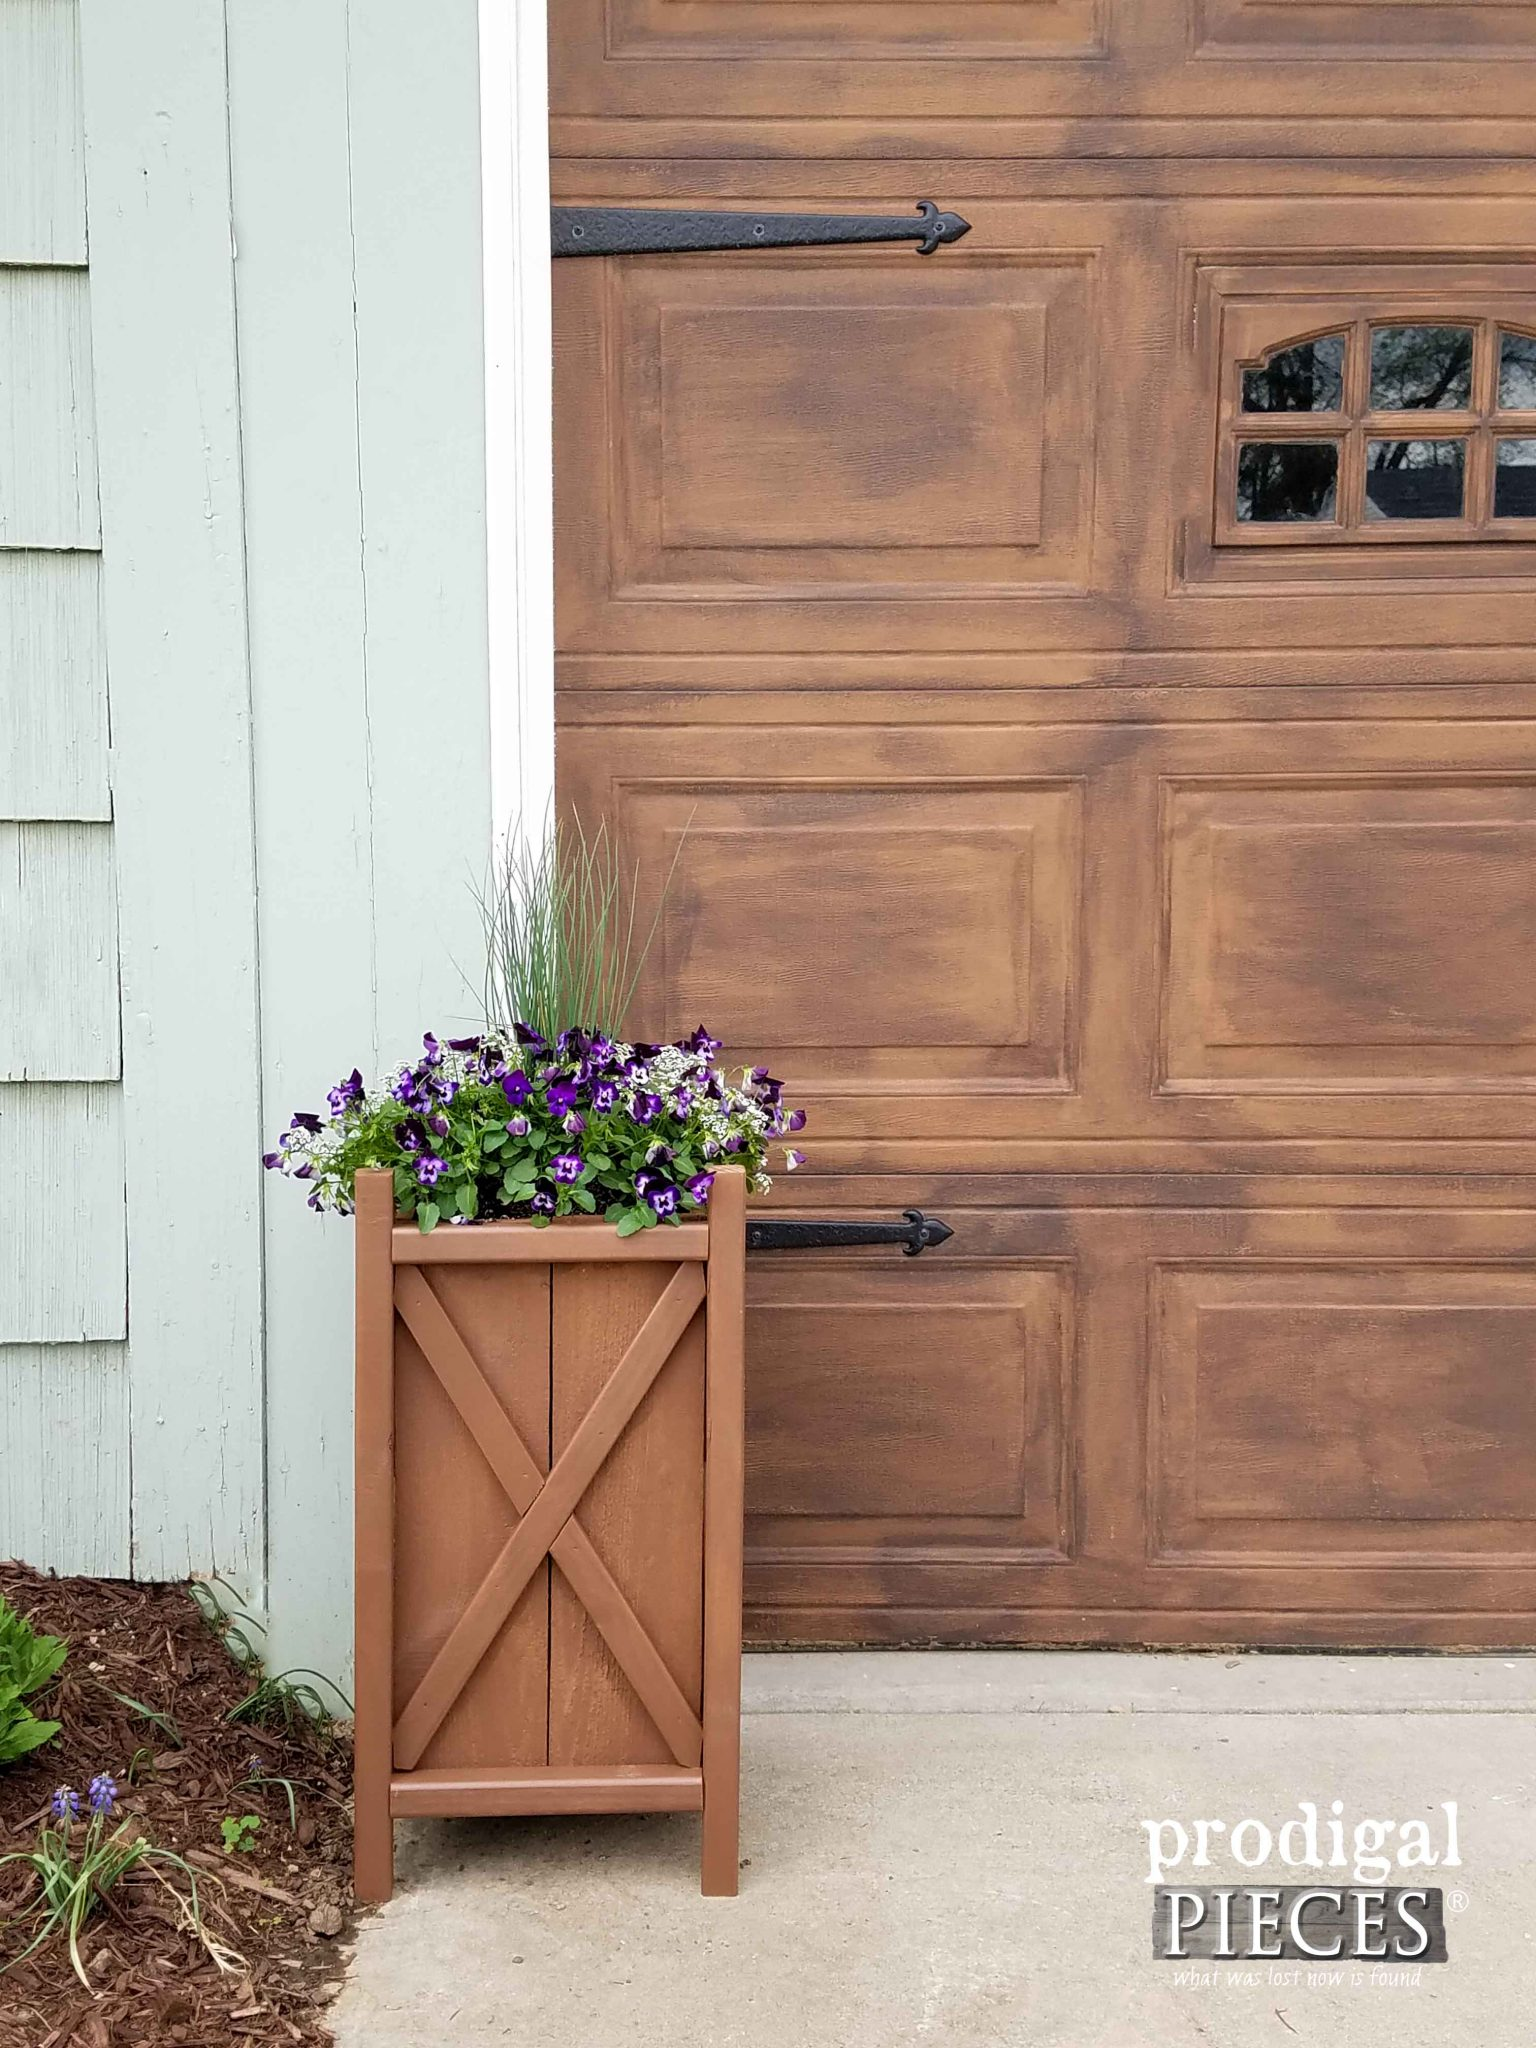 Build this Planter in One Day by Prodigal Pieces | prodigalpieces.com